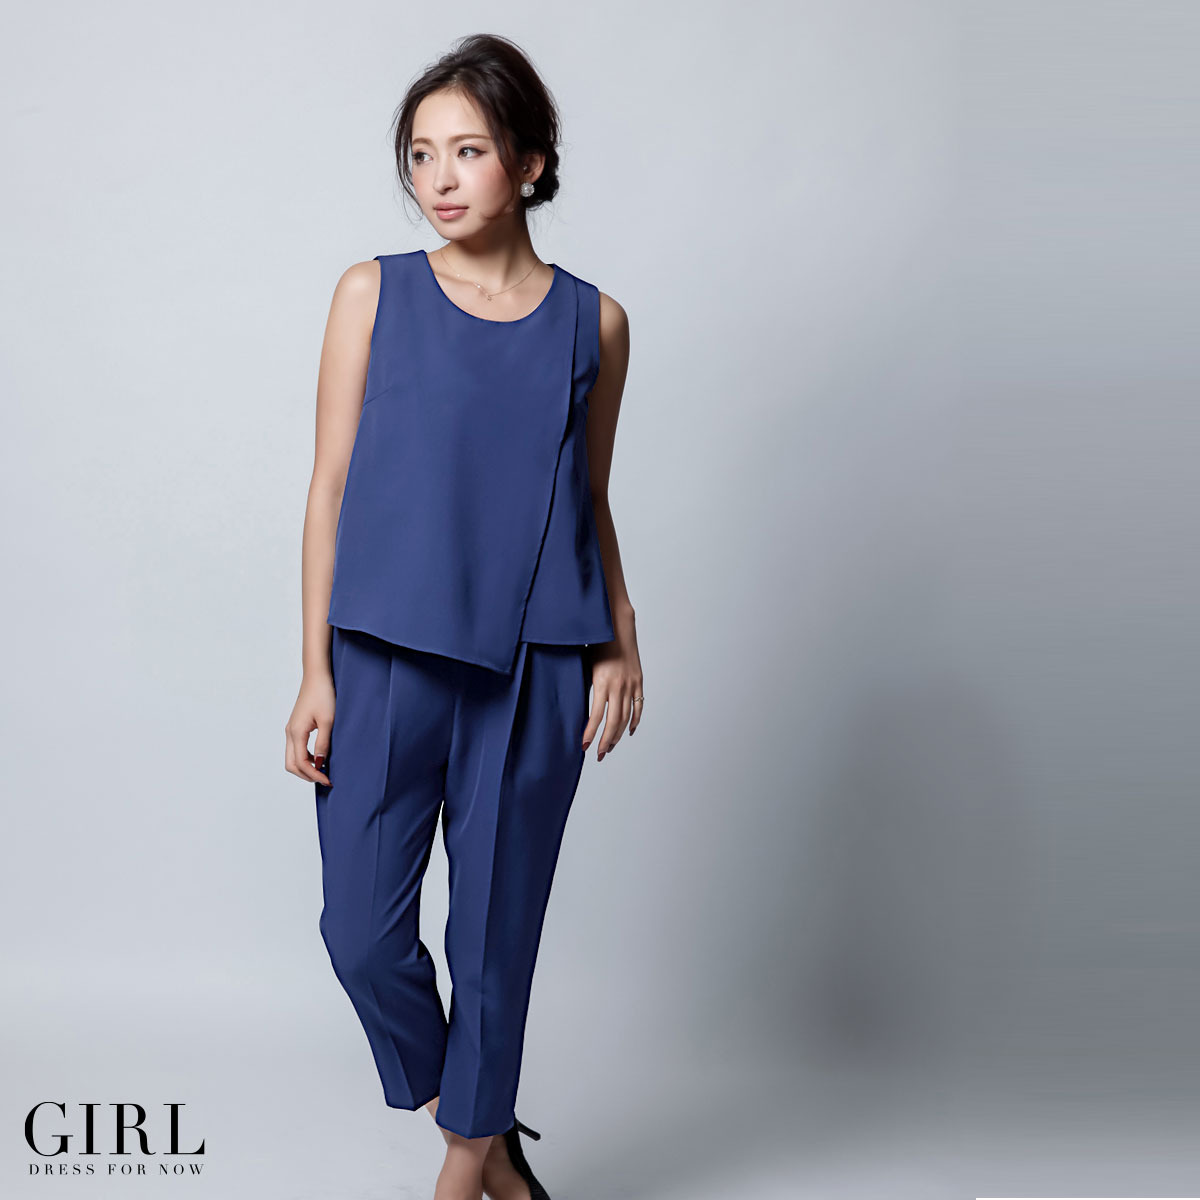 Dress shop GIRL | Rakuten Global Market: Asymmetric pants dress all ...